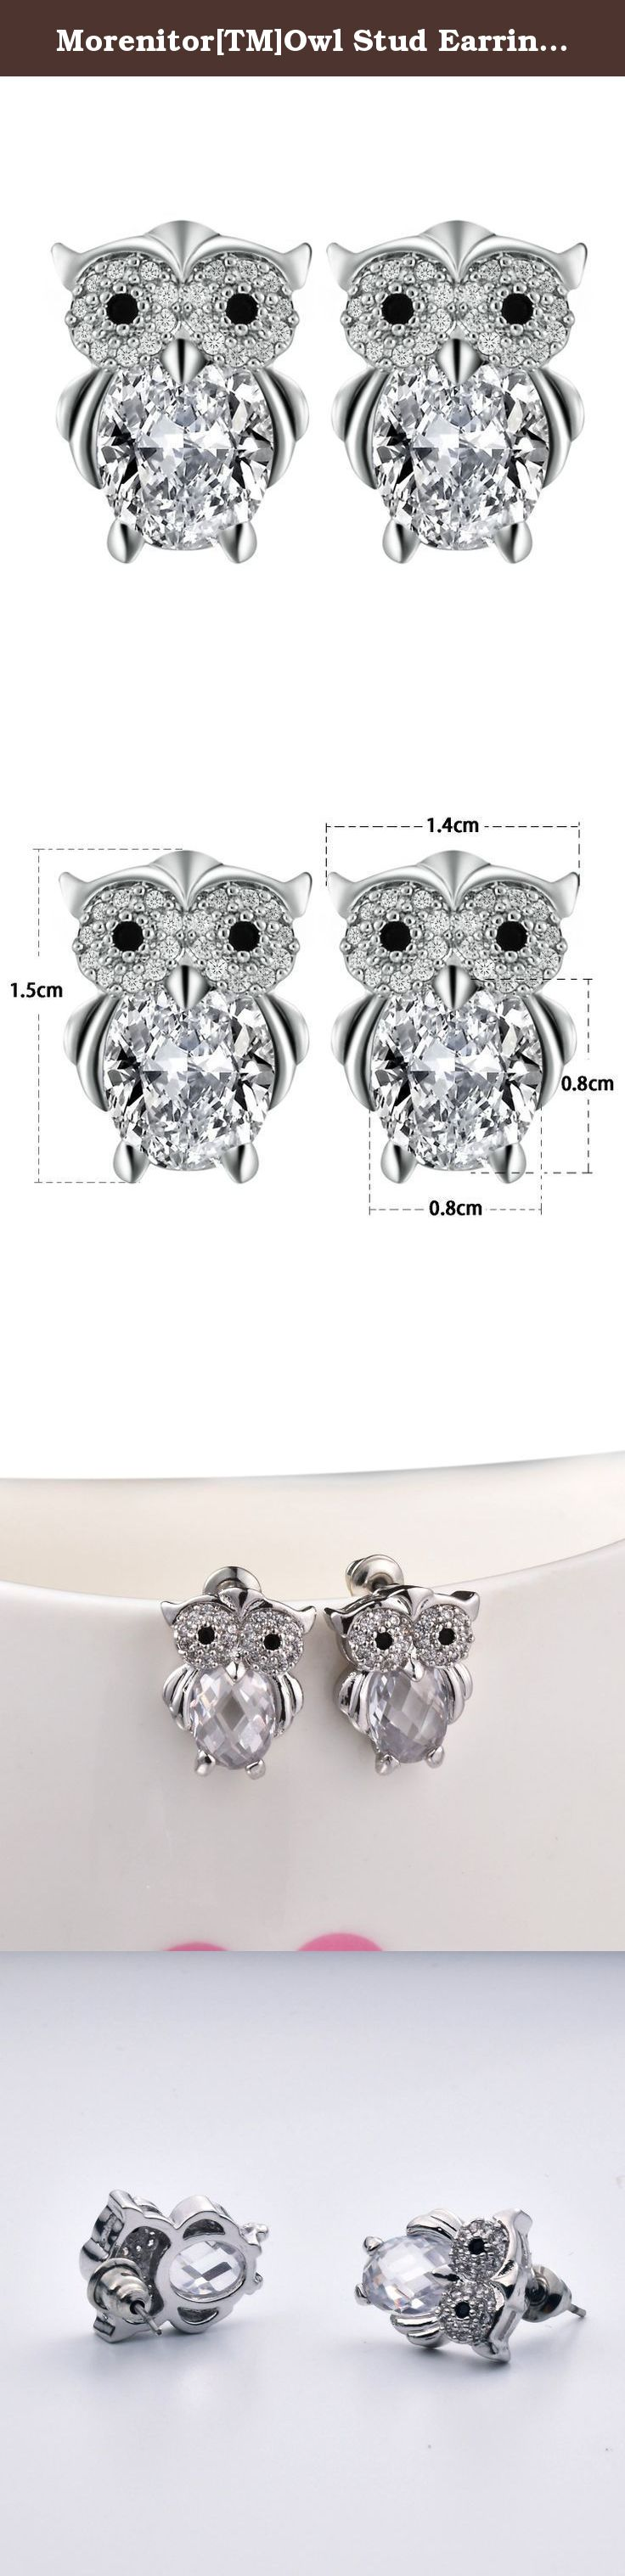 Morenitor[TM]Owl Stud Earring Bling Gold Plated Crystal Rhinestone